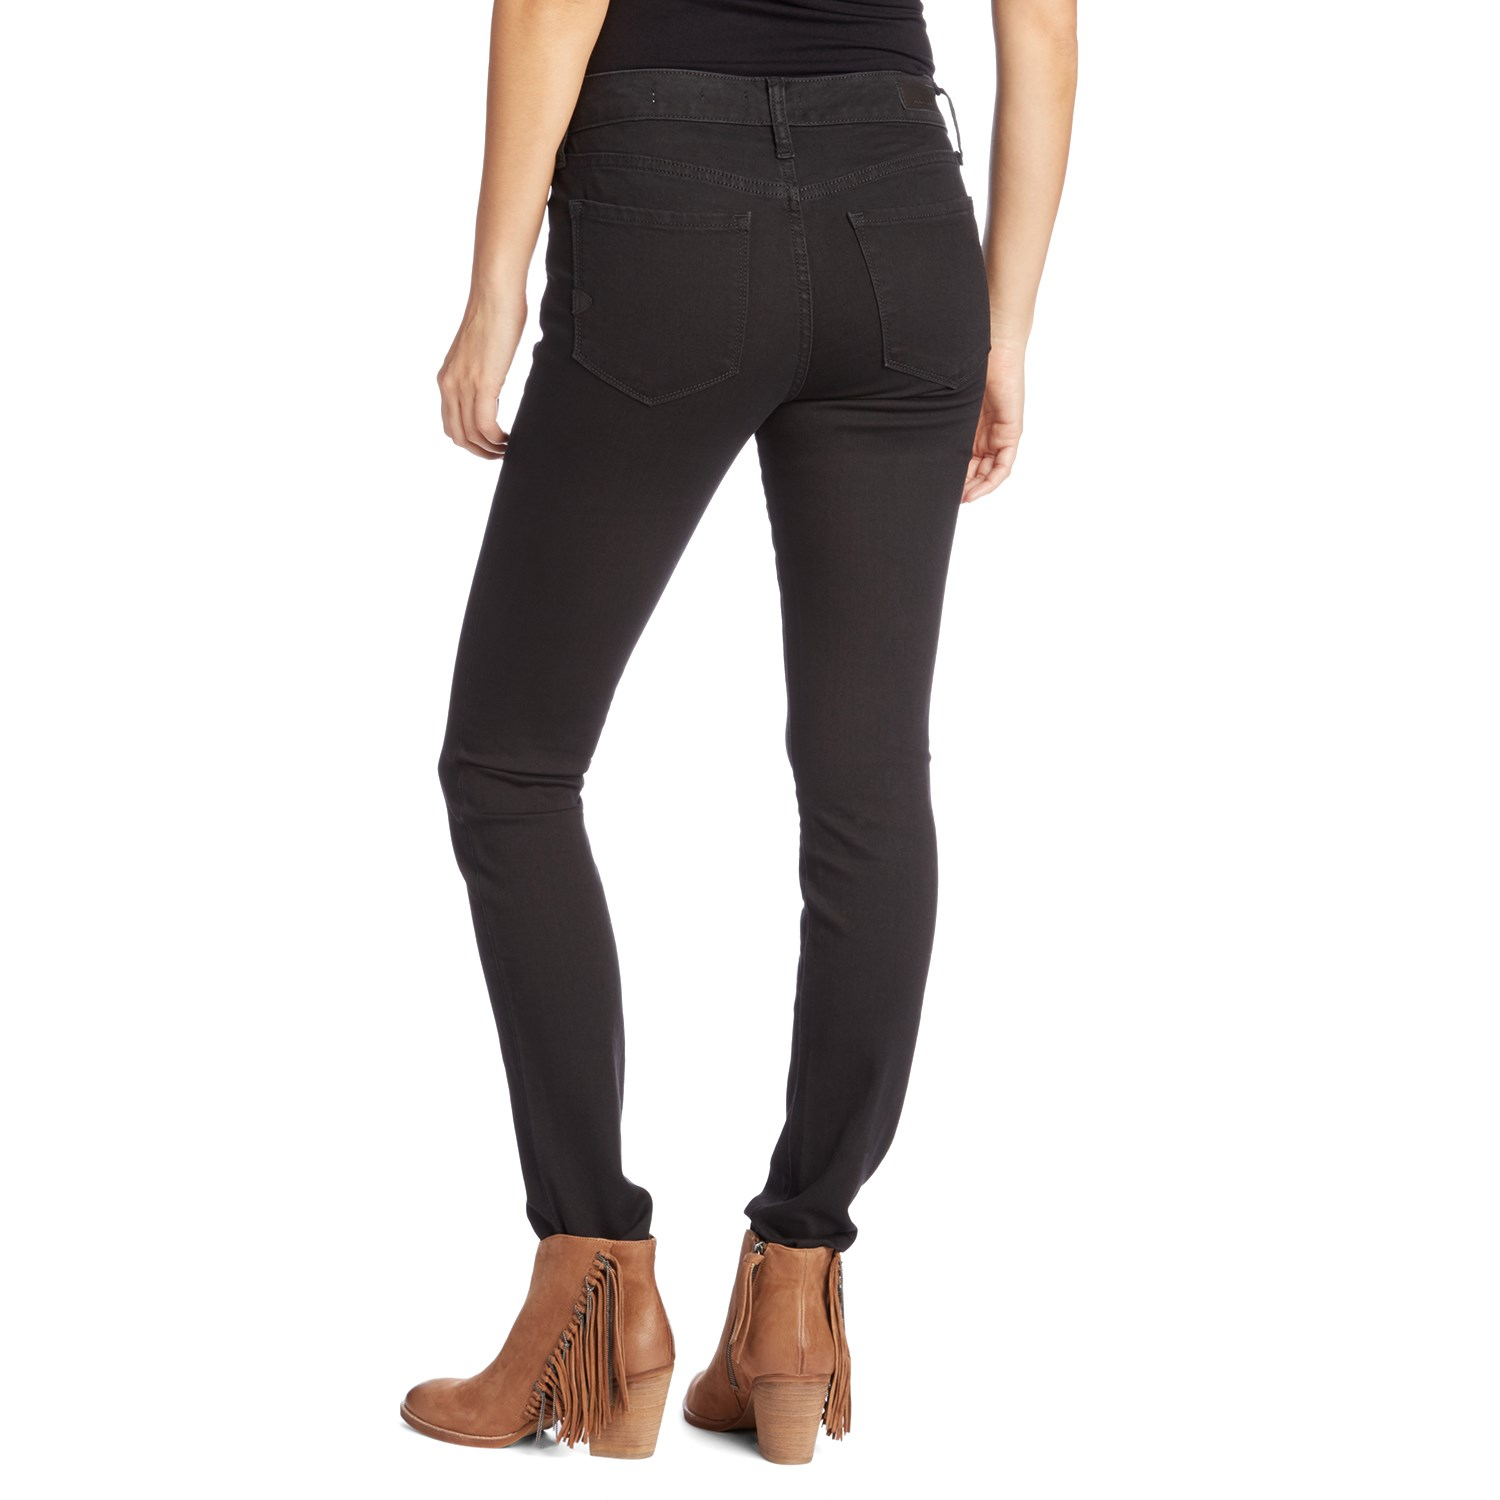 Black Super Skinny Jeans Womens - Jeans Am